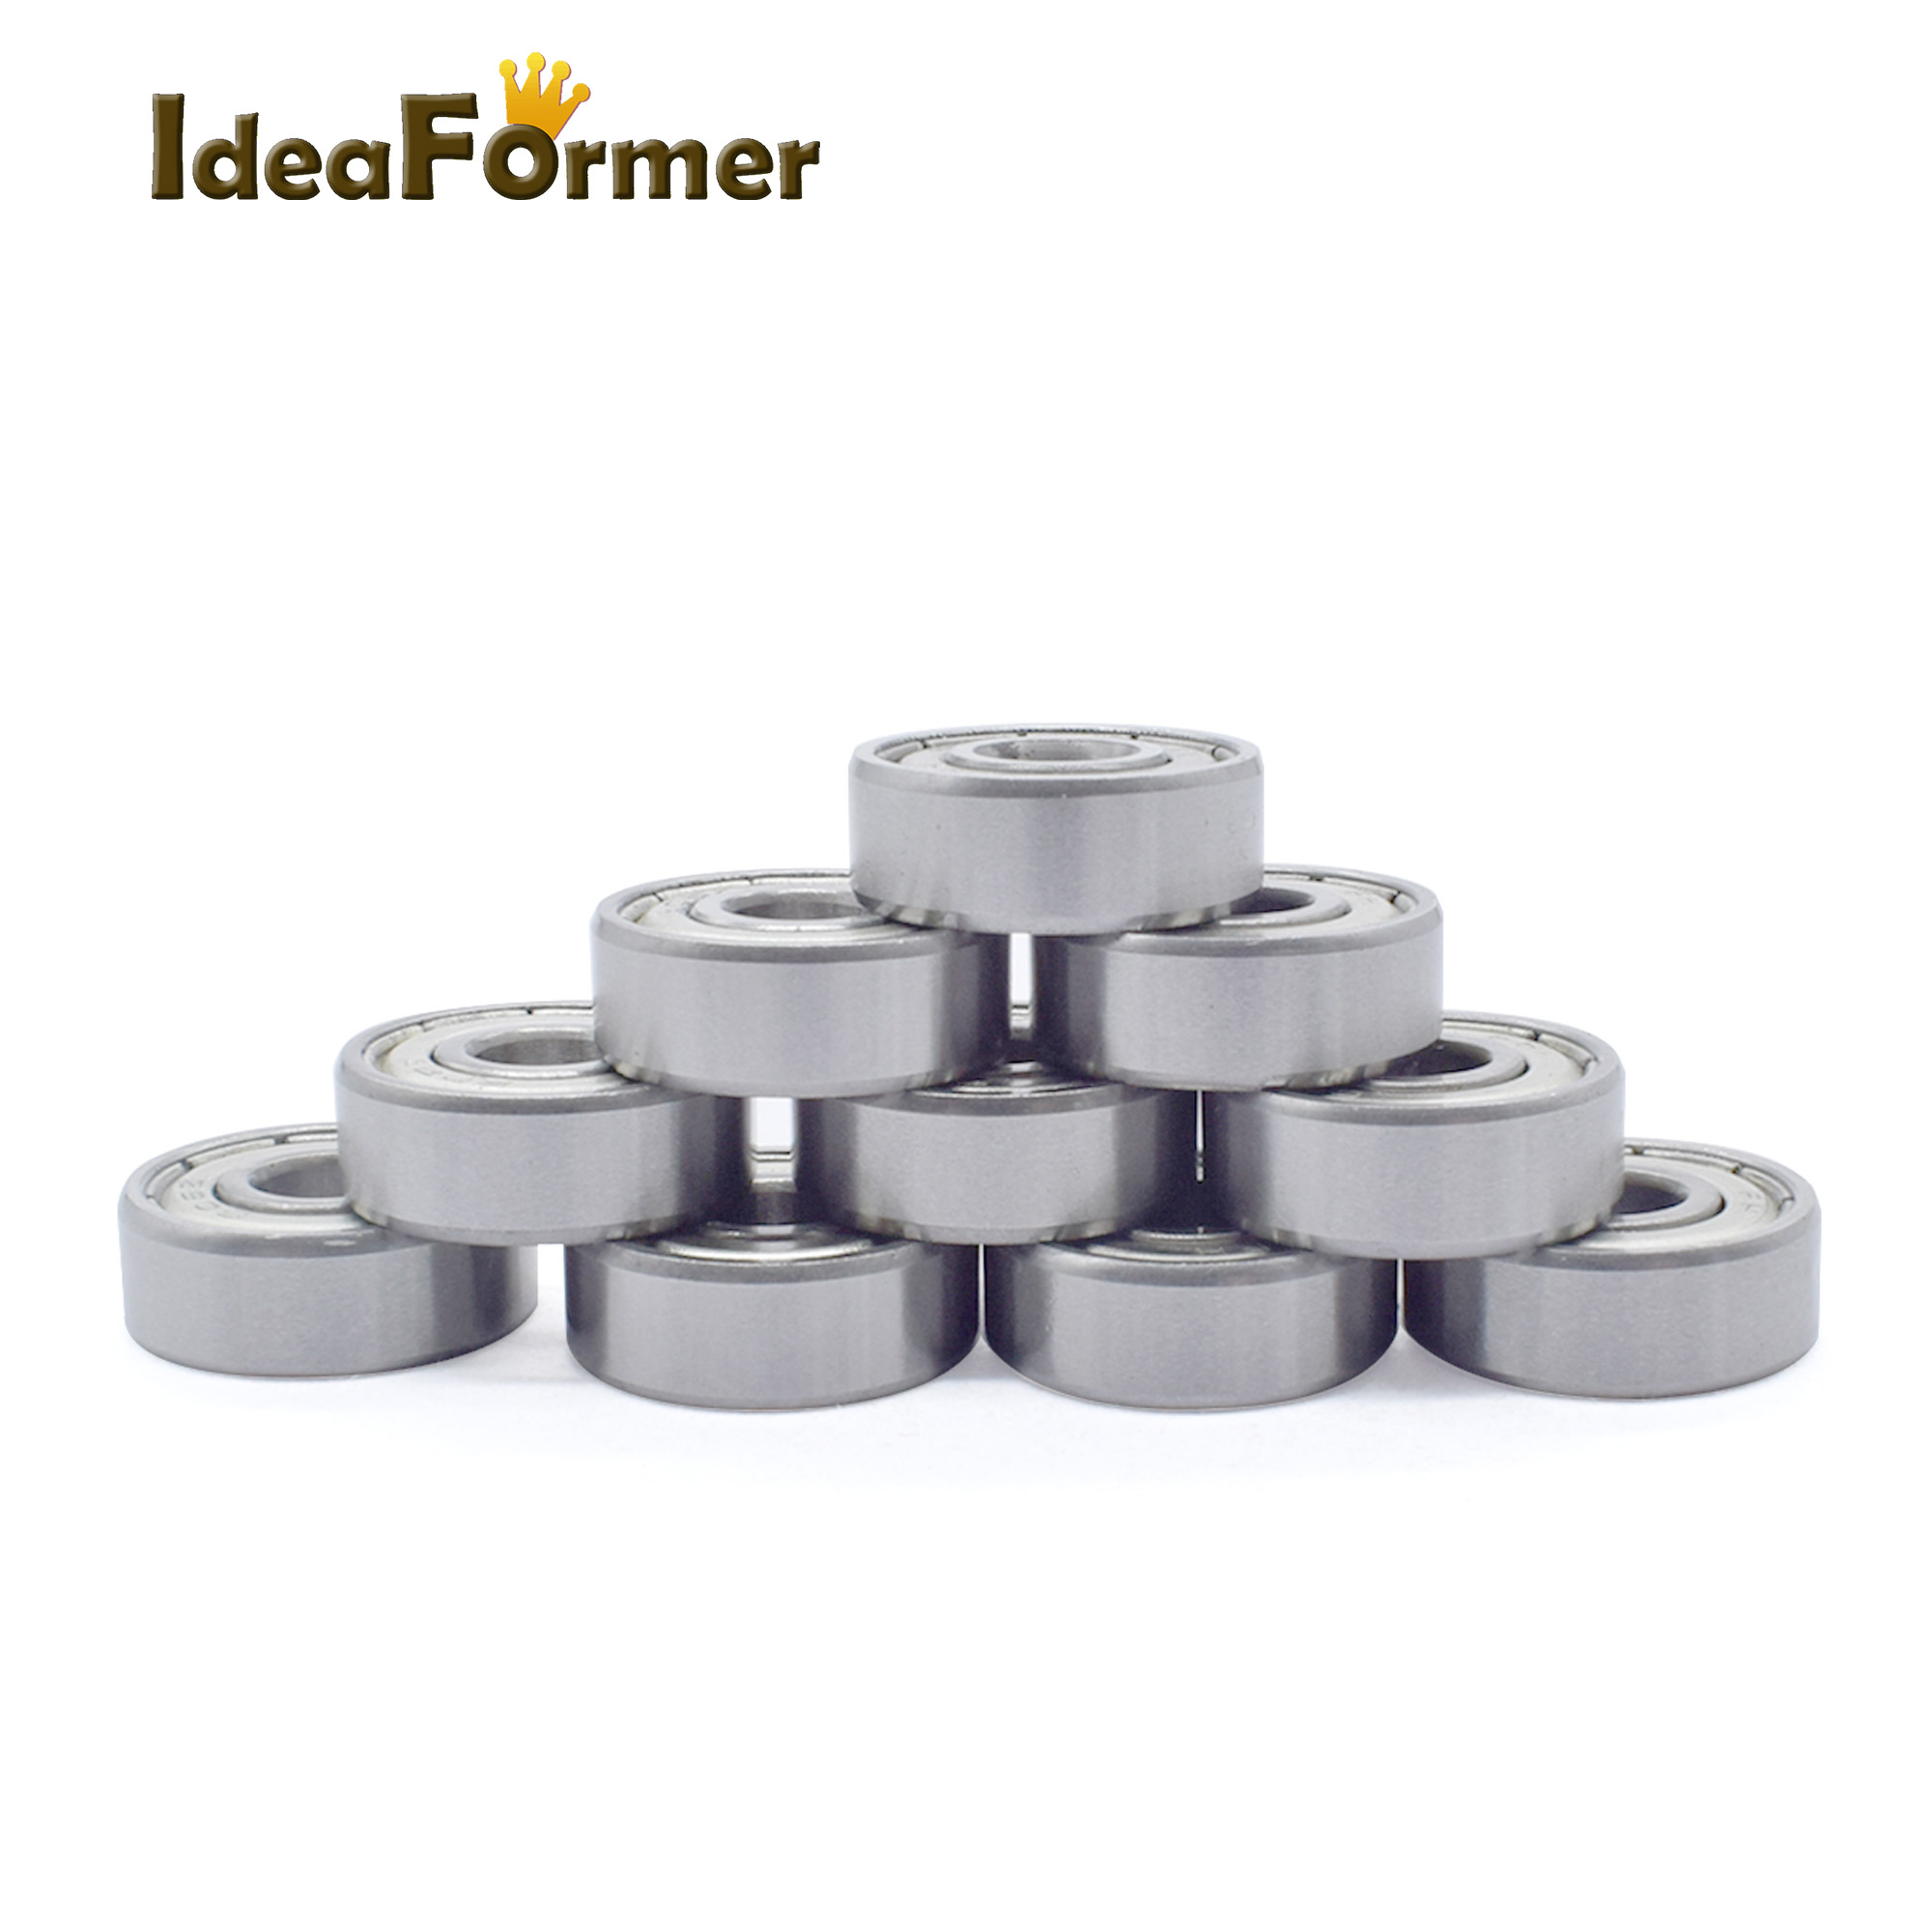 10pcs ABEC 7 625ZZ Ball <font><b>Bearing</b></font> Deep Groove <font><b>bearing</b></font> <font><b>5*16*5</b></font> mm Miniature deep groove image